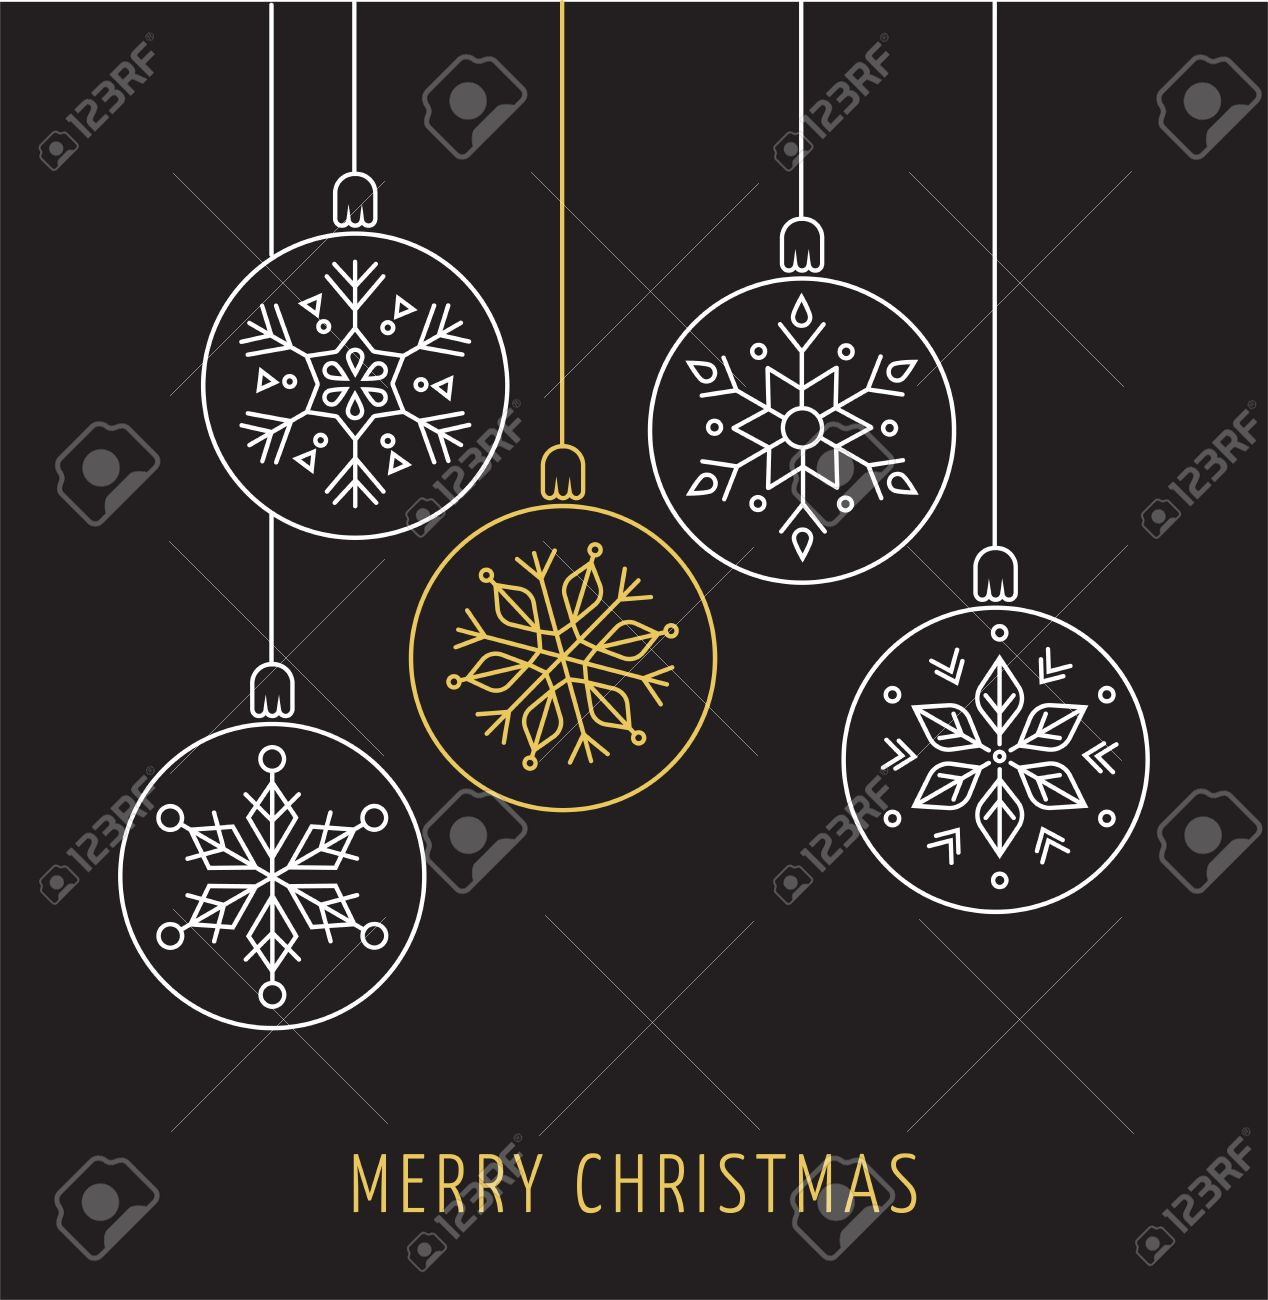 snowlakes geometric line art christmas ornaments background stock vector